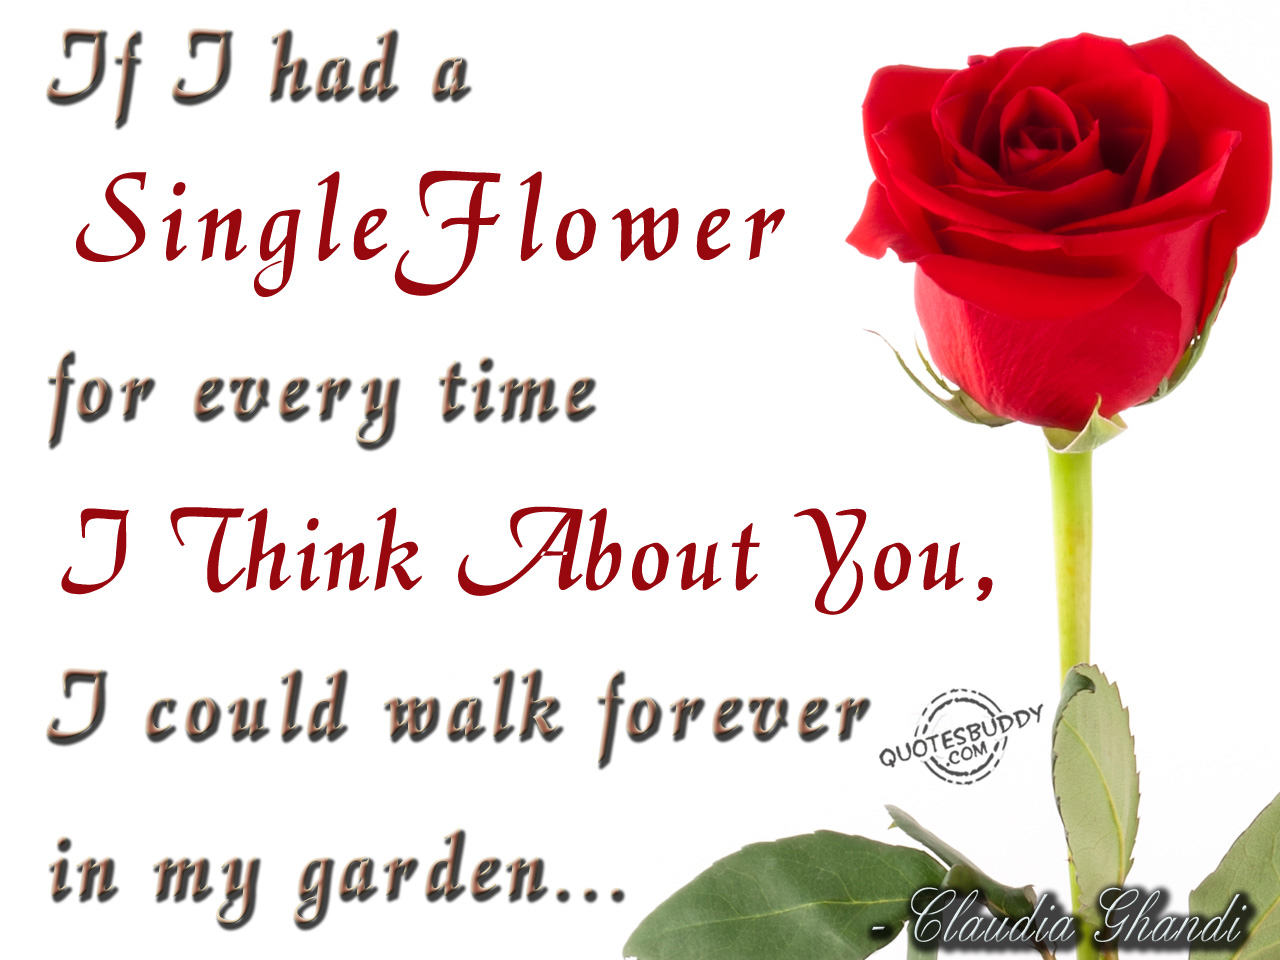 If I Had a Single Flower For Every Time I Think About You, I Could Walk Forever In My Garden